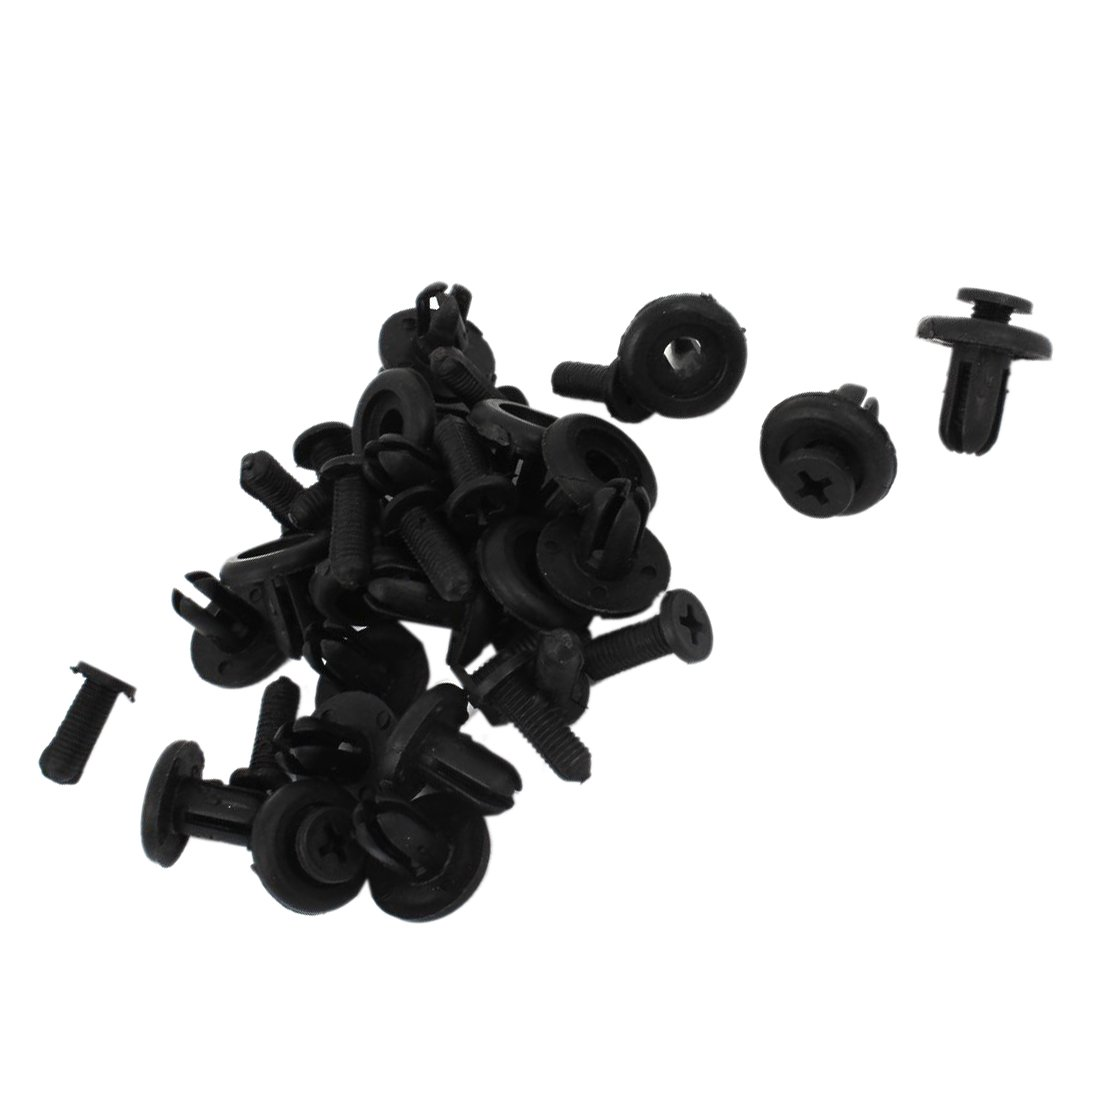 Car Bumper Fasteners - TOOGOO(R) Car Bumper Fender 7mm Hole Black Plastic Rivets Fasteners 20 Pcs by TOOGOO(R) (Image #2)